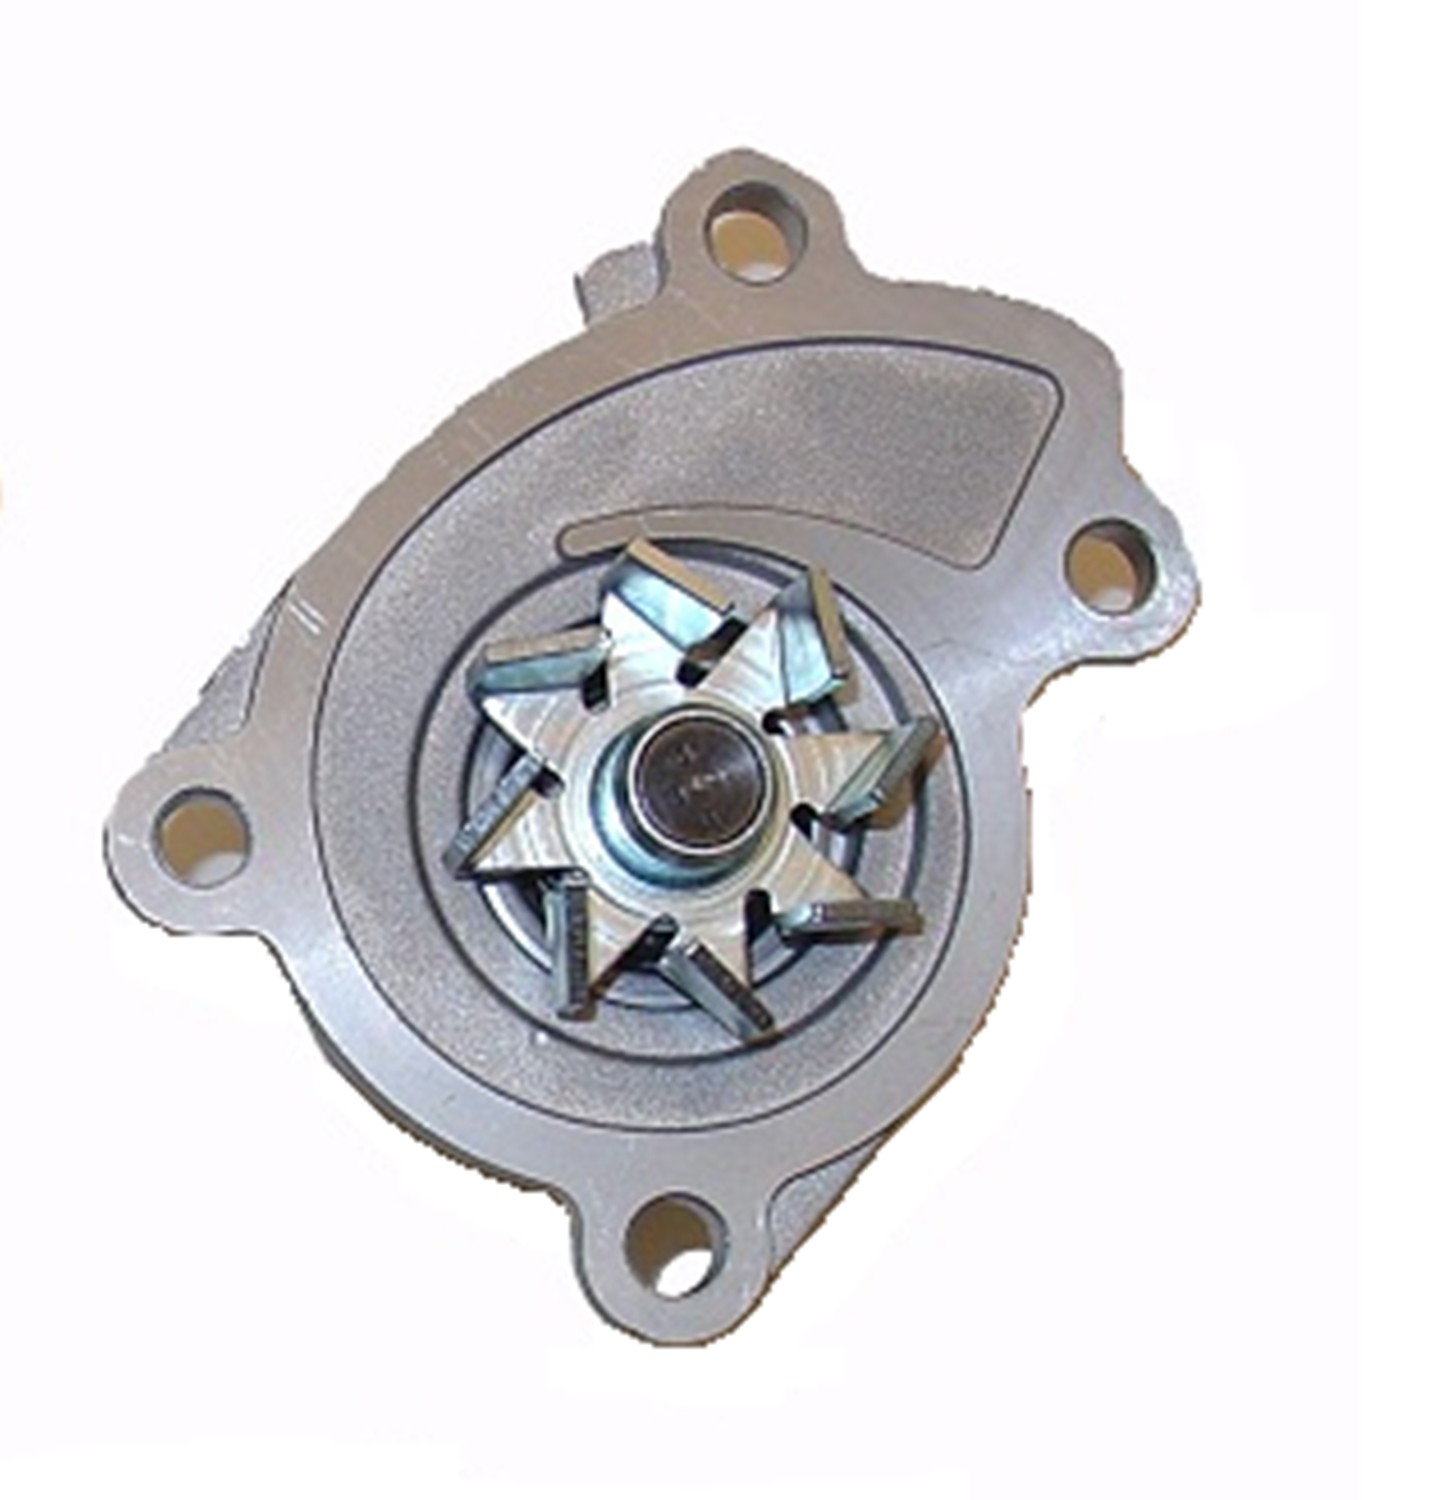 hight resolution of 2012 nissan versa engine water pump aw aw6687